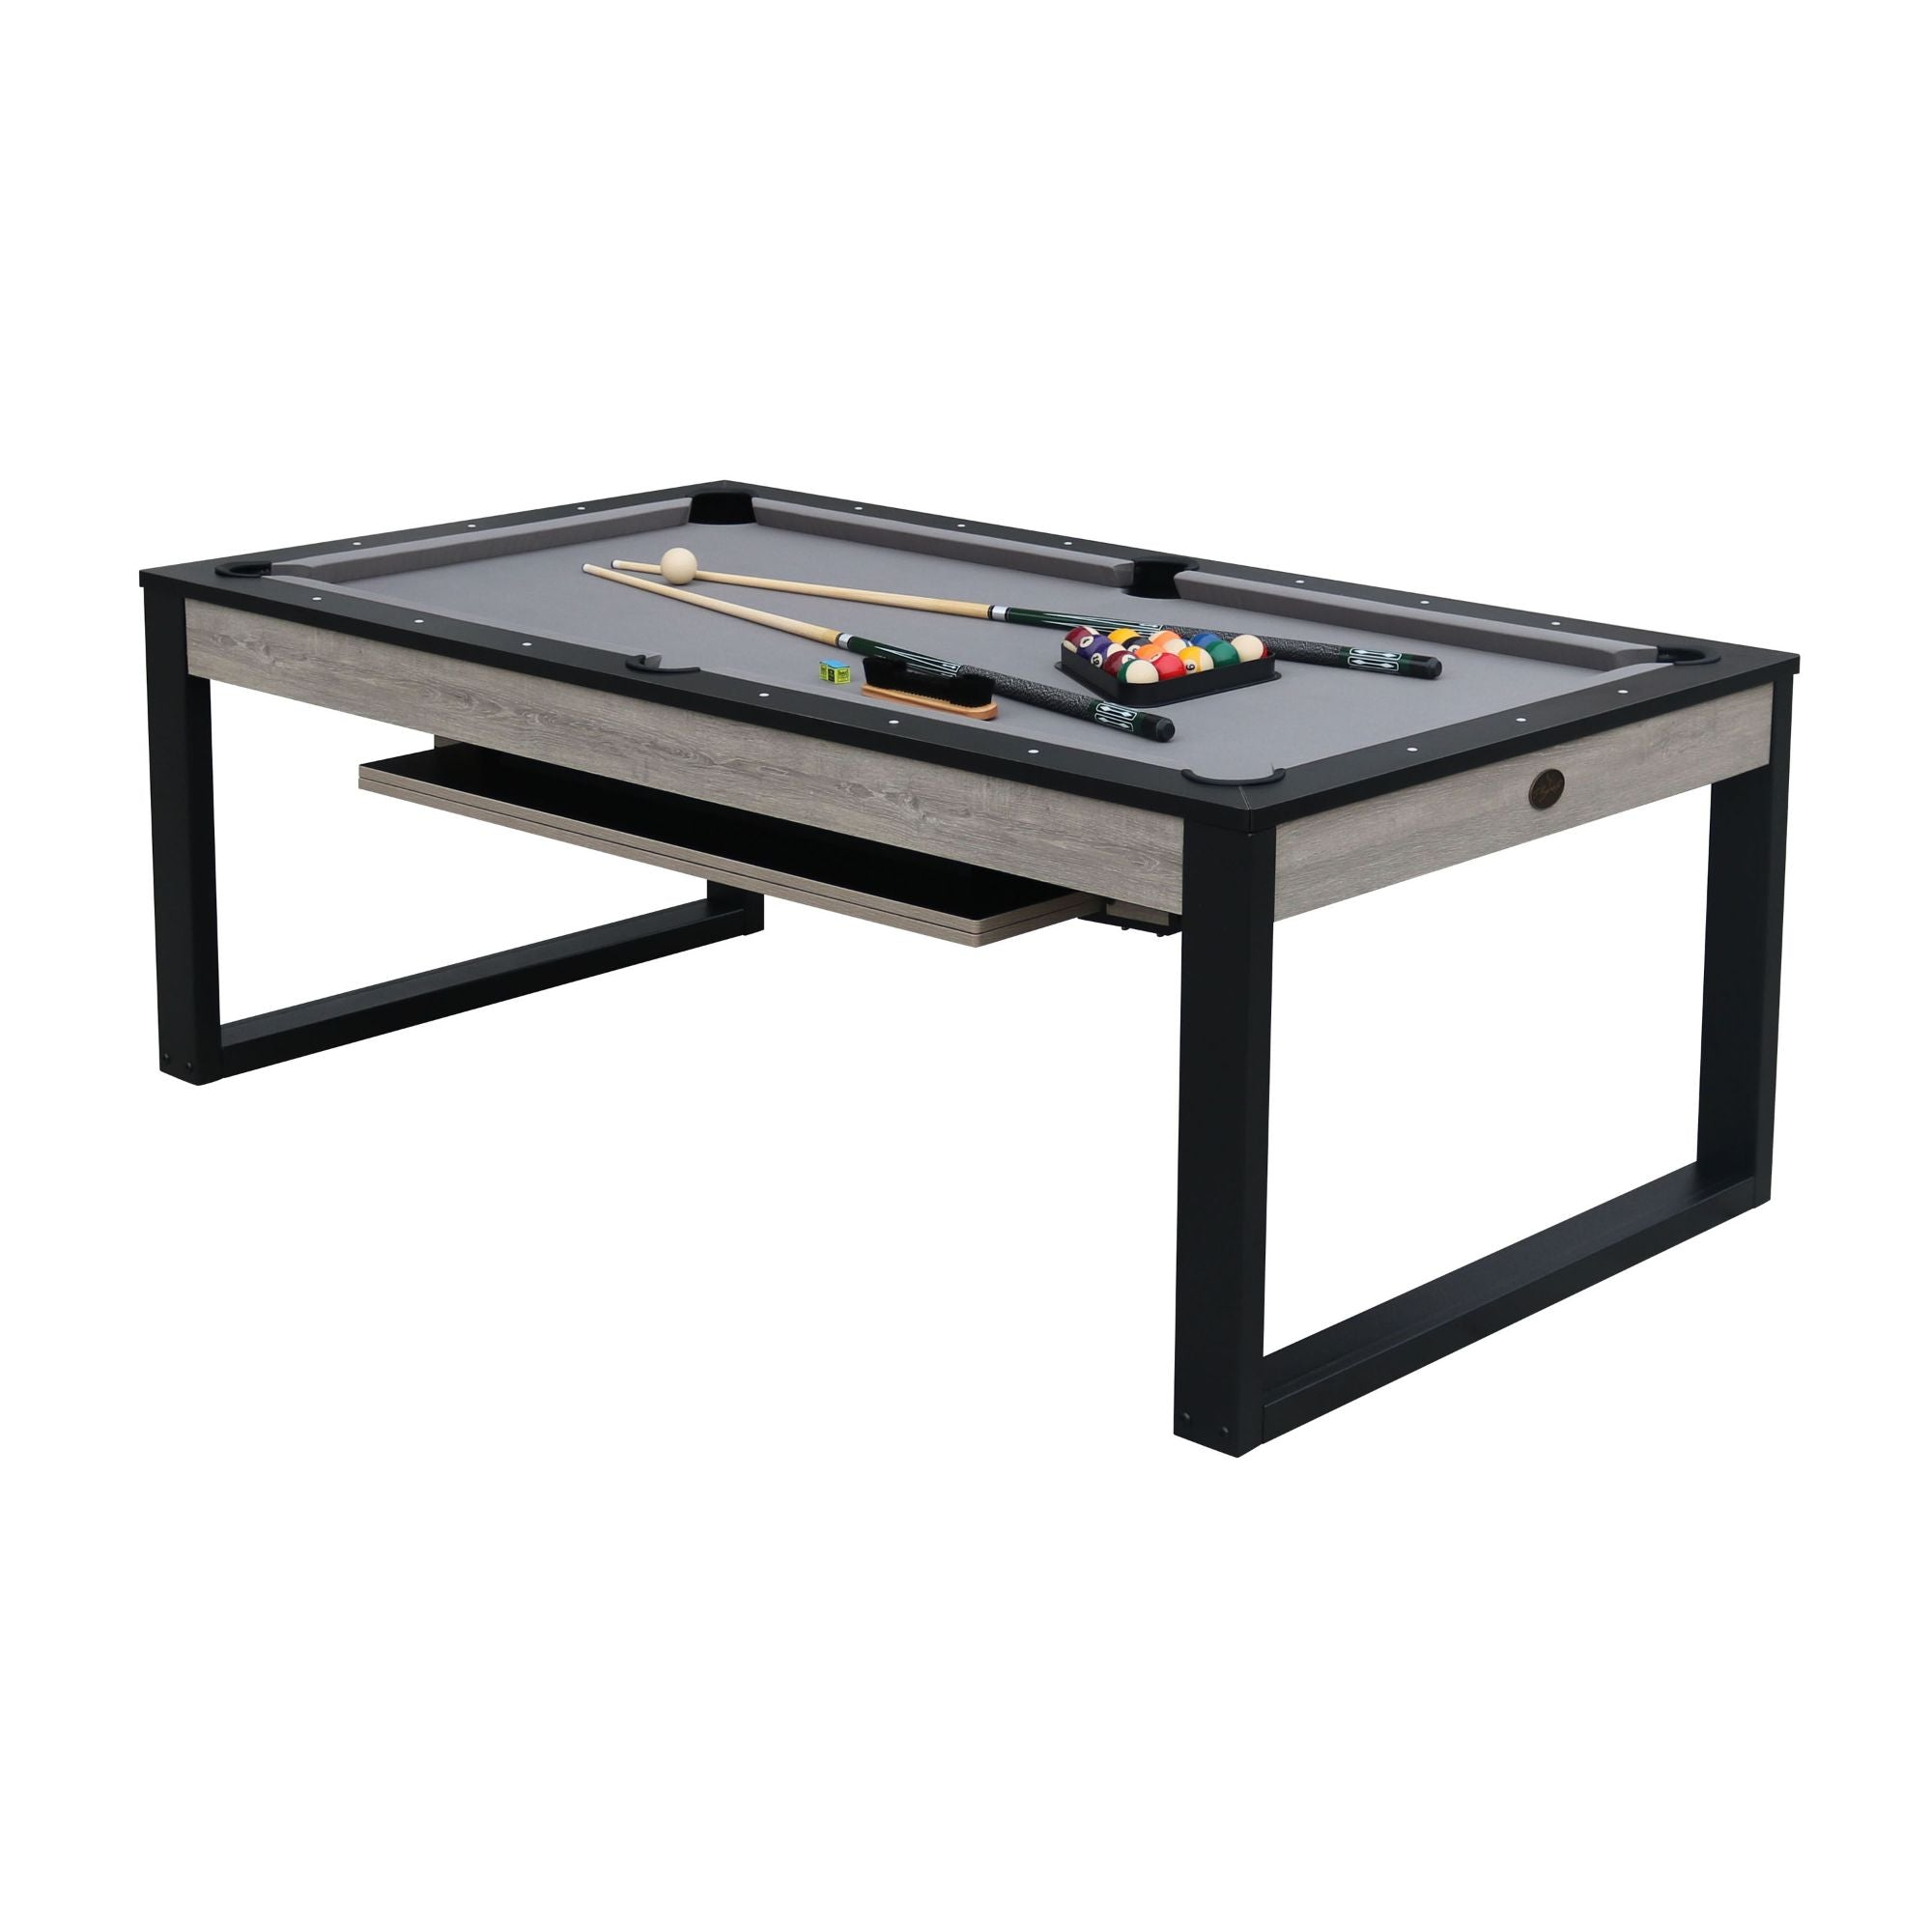 Playcraft Cascades 7' Pool Table with Dining Top - Gaming Blaze